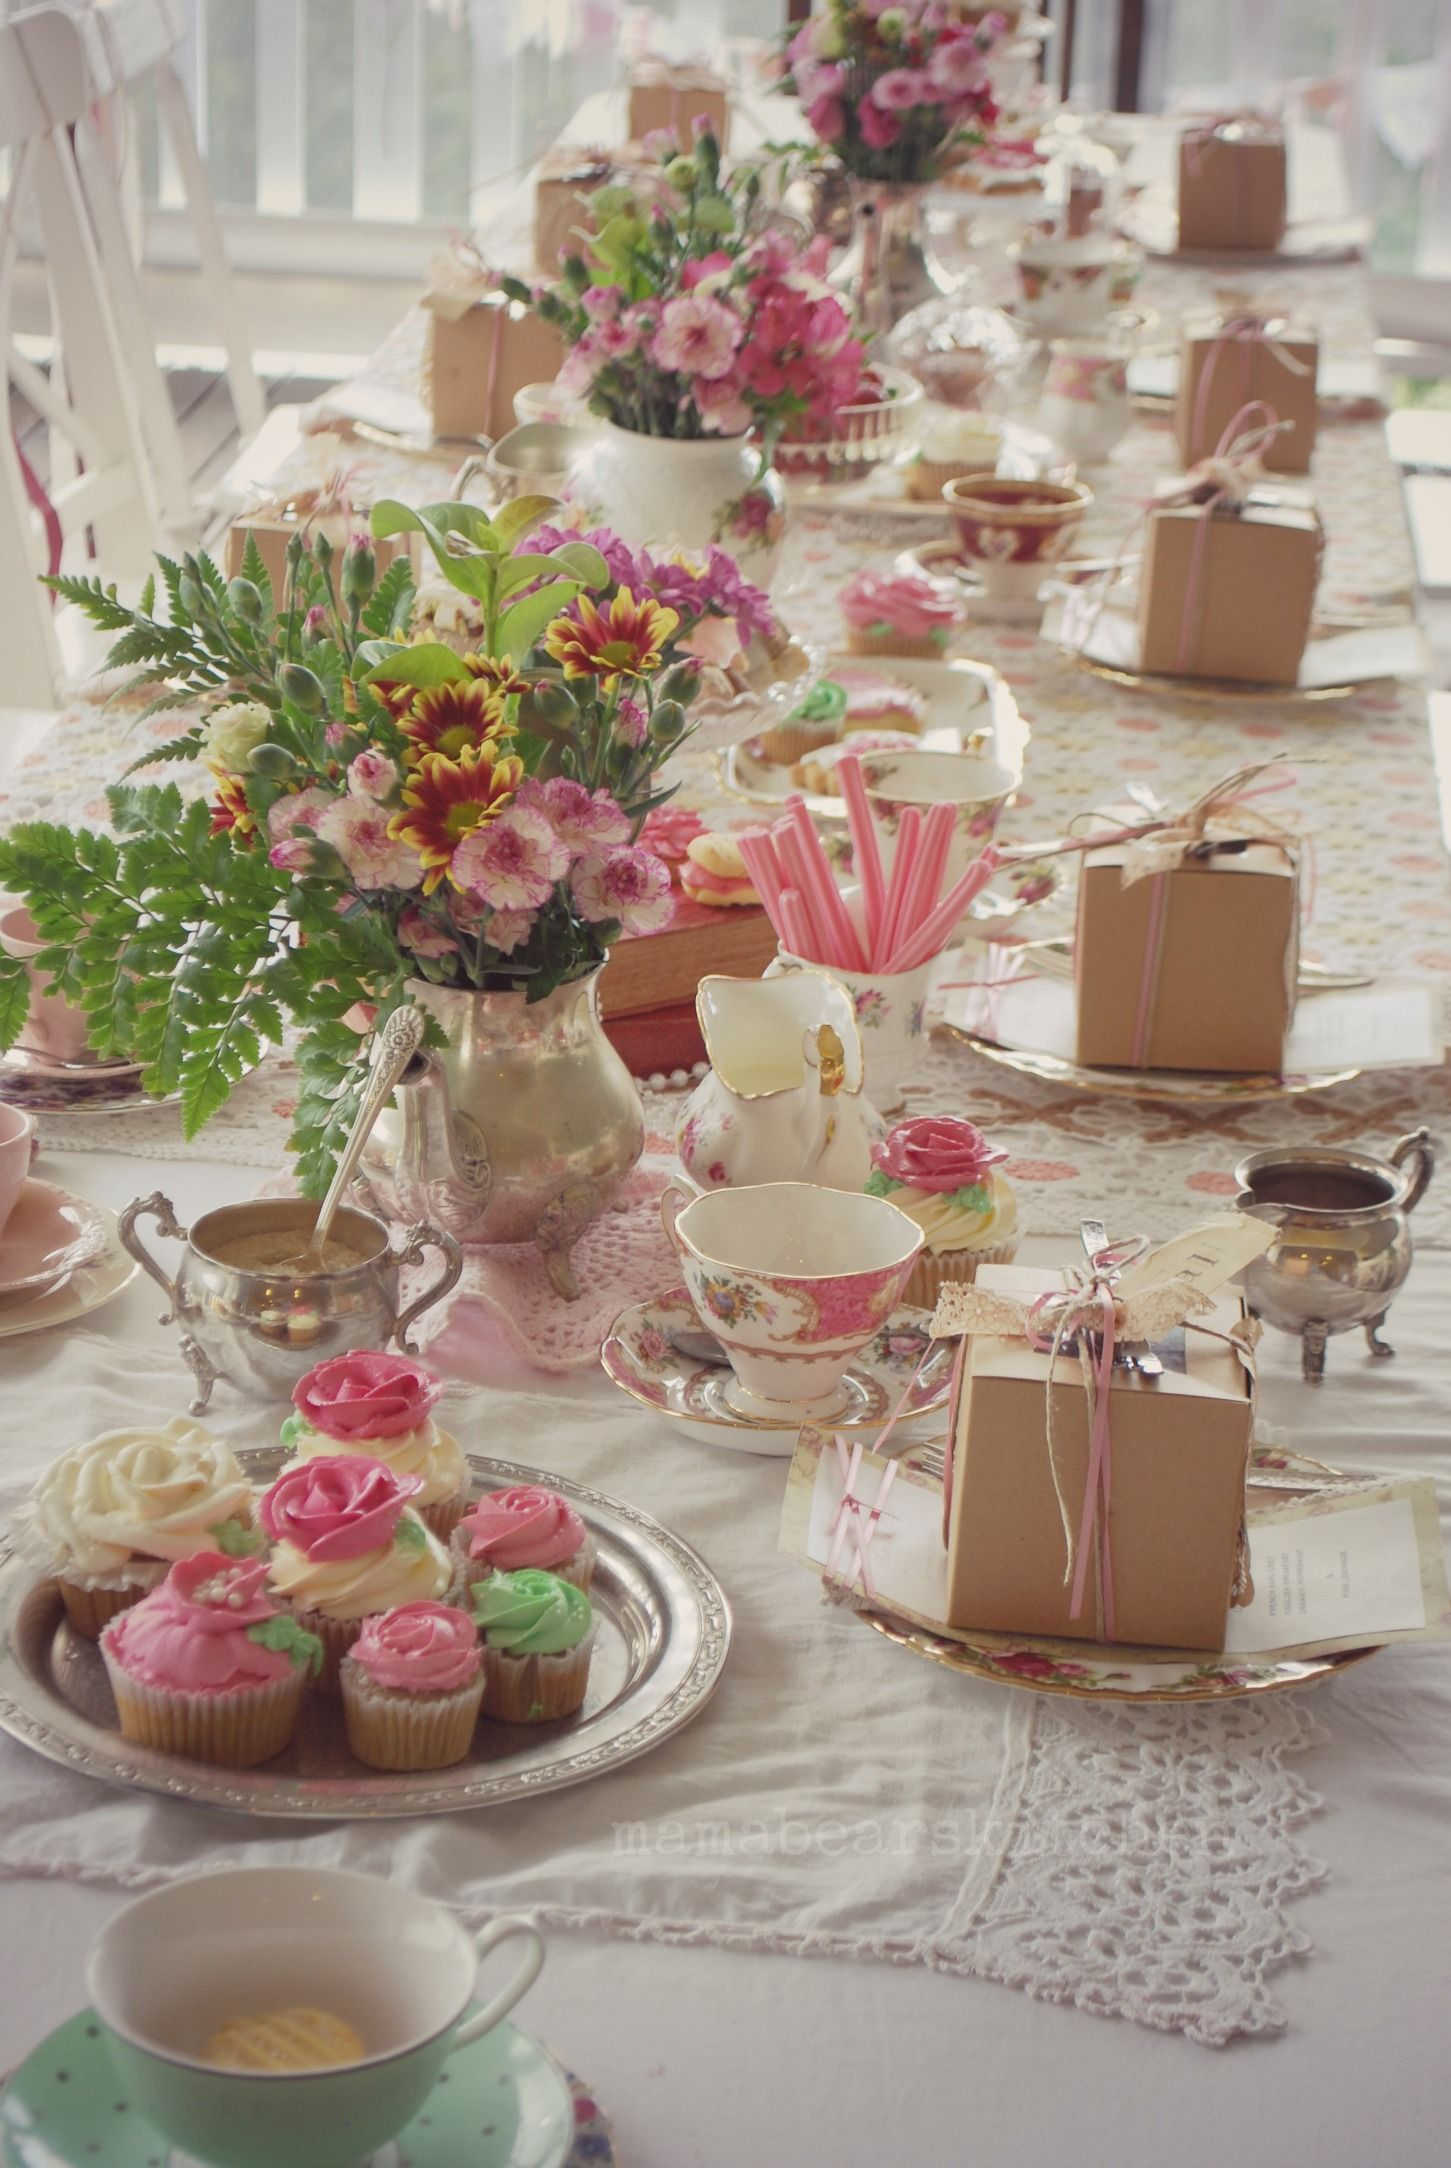 Pin By Audrey Kuah On Vintage Tea Party Tea Party Garden English Tea Party Afternoon Tea Parties